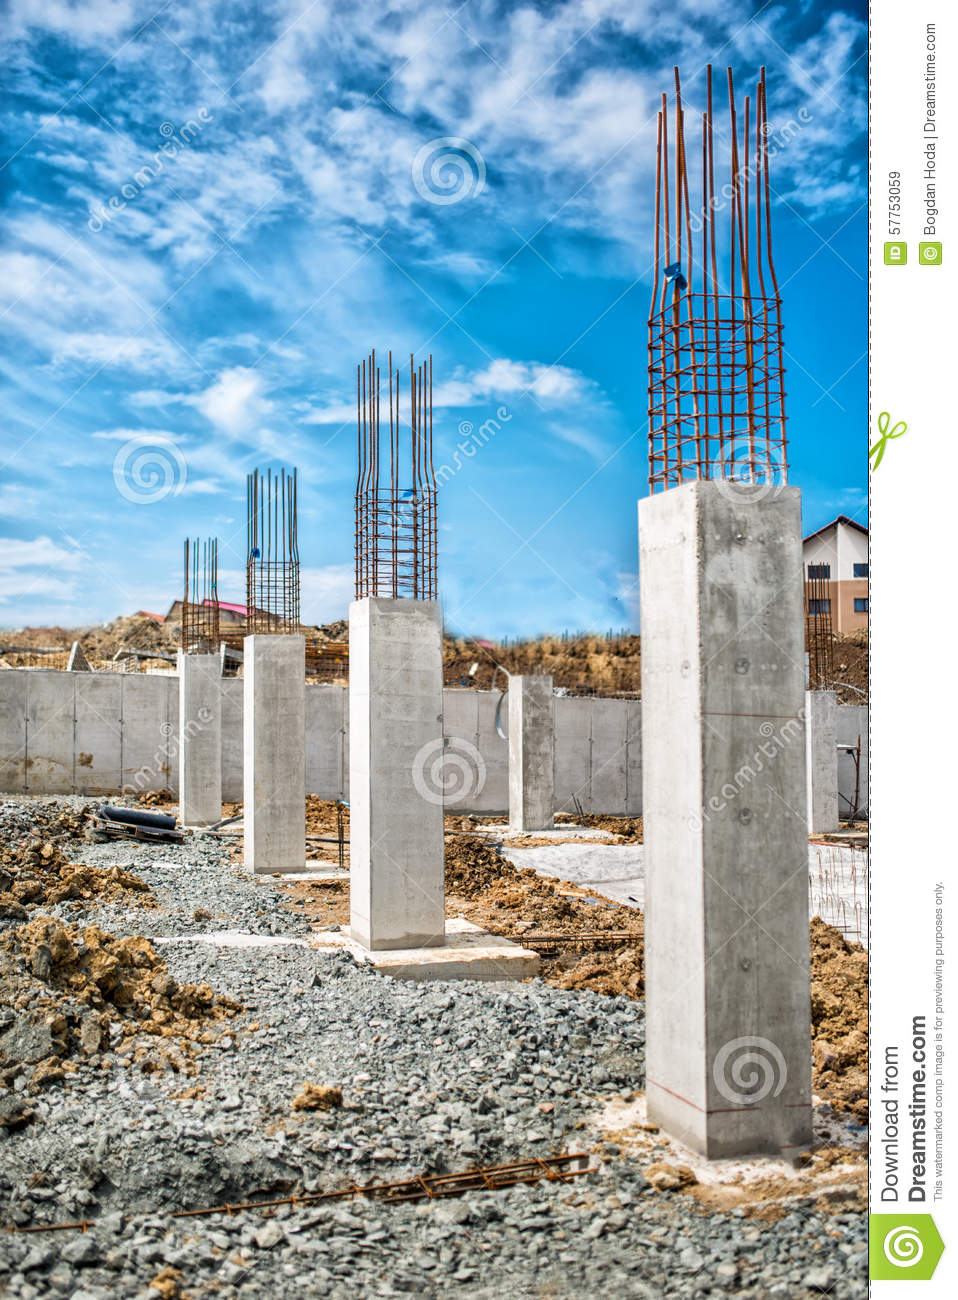 Metal Building Pillar : Reinforced steel bars on construction pillars concrete